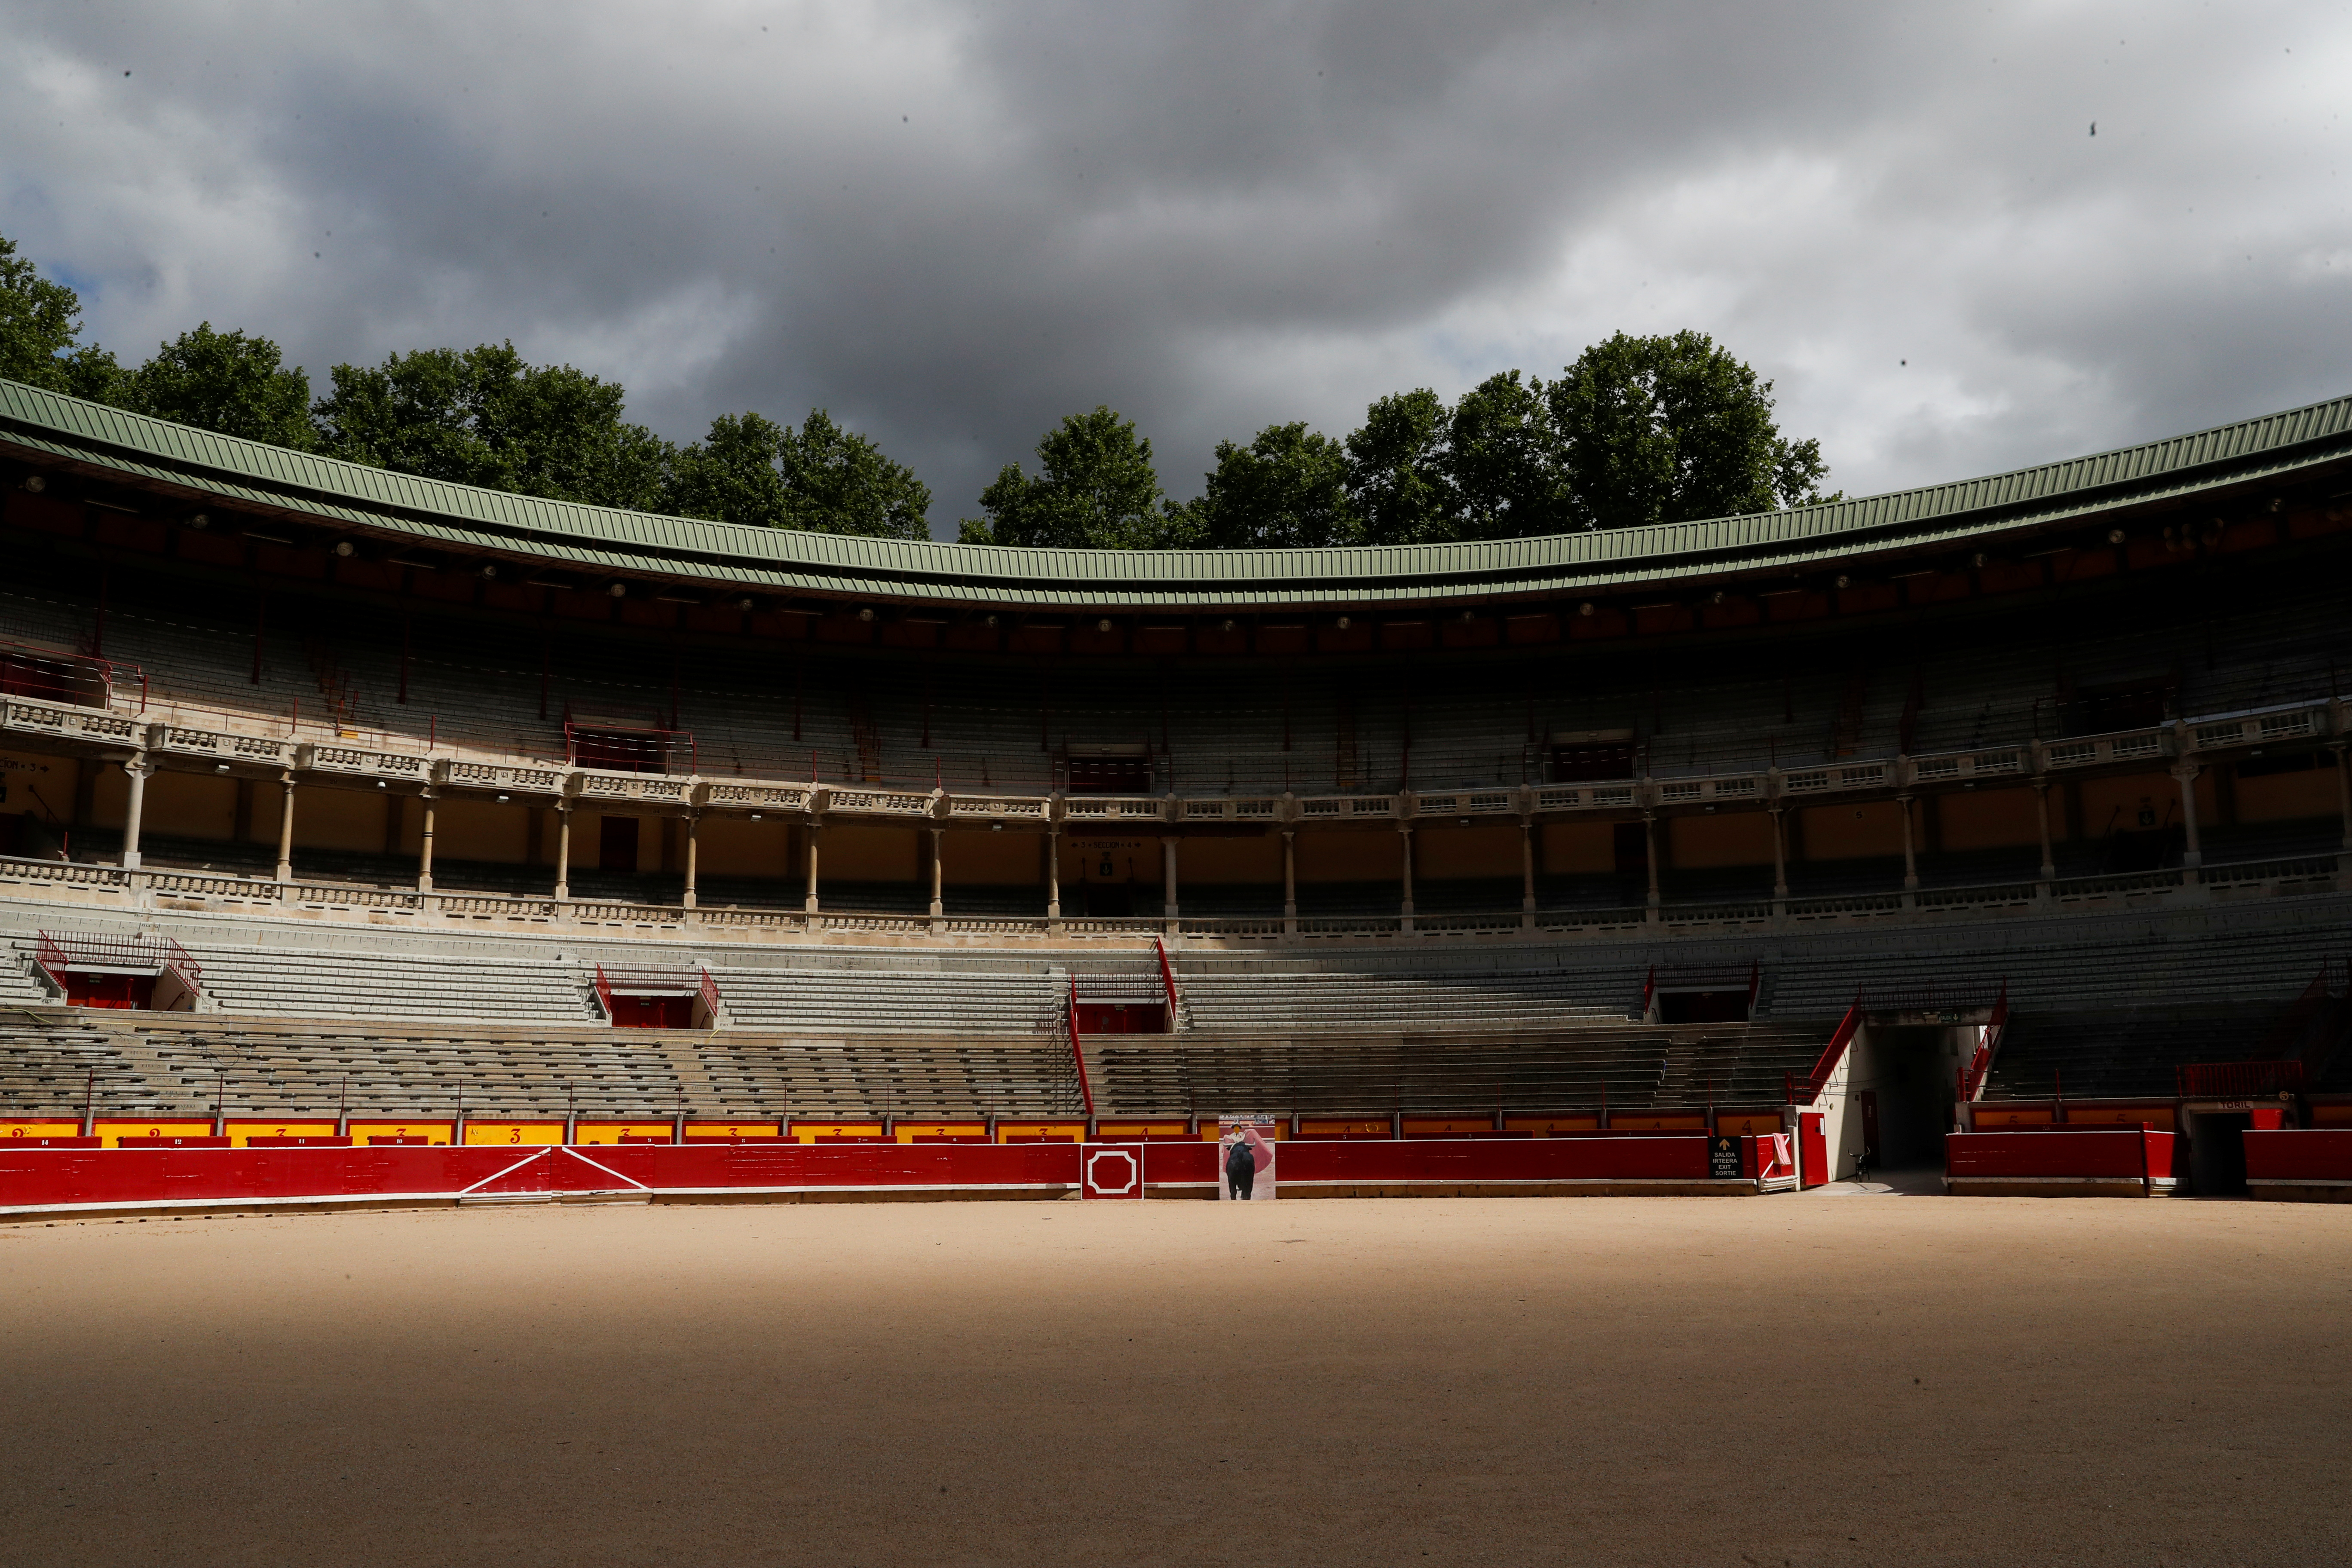 Spain's cancelled bull-running fiesta leaves streets empty, feelings mixed